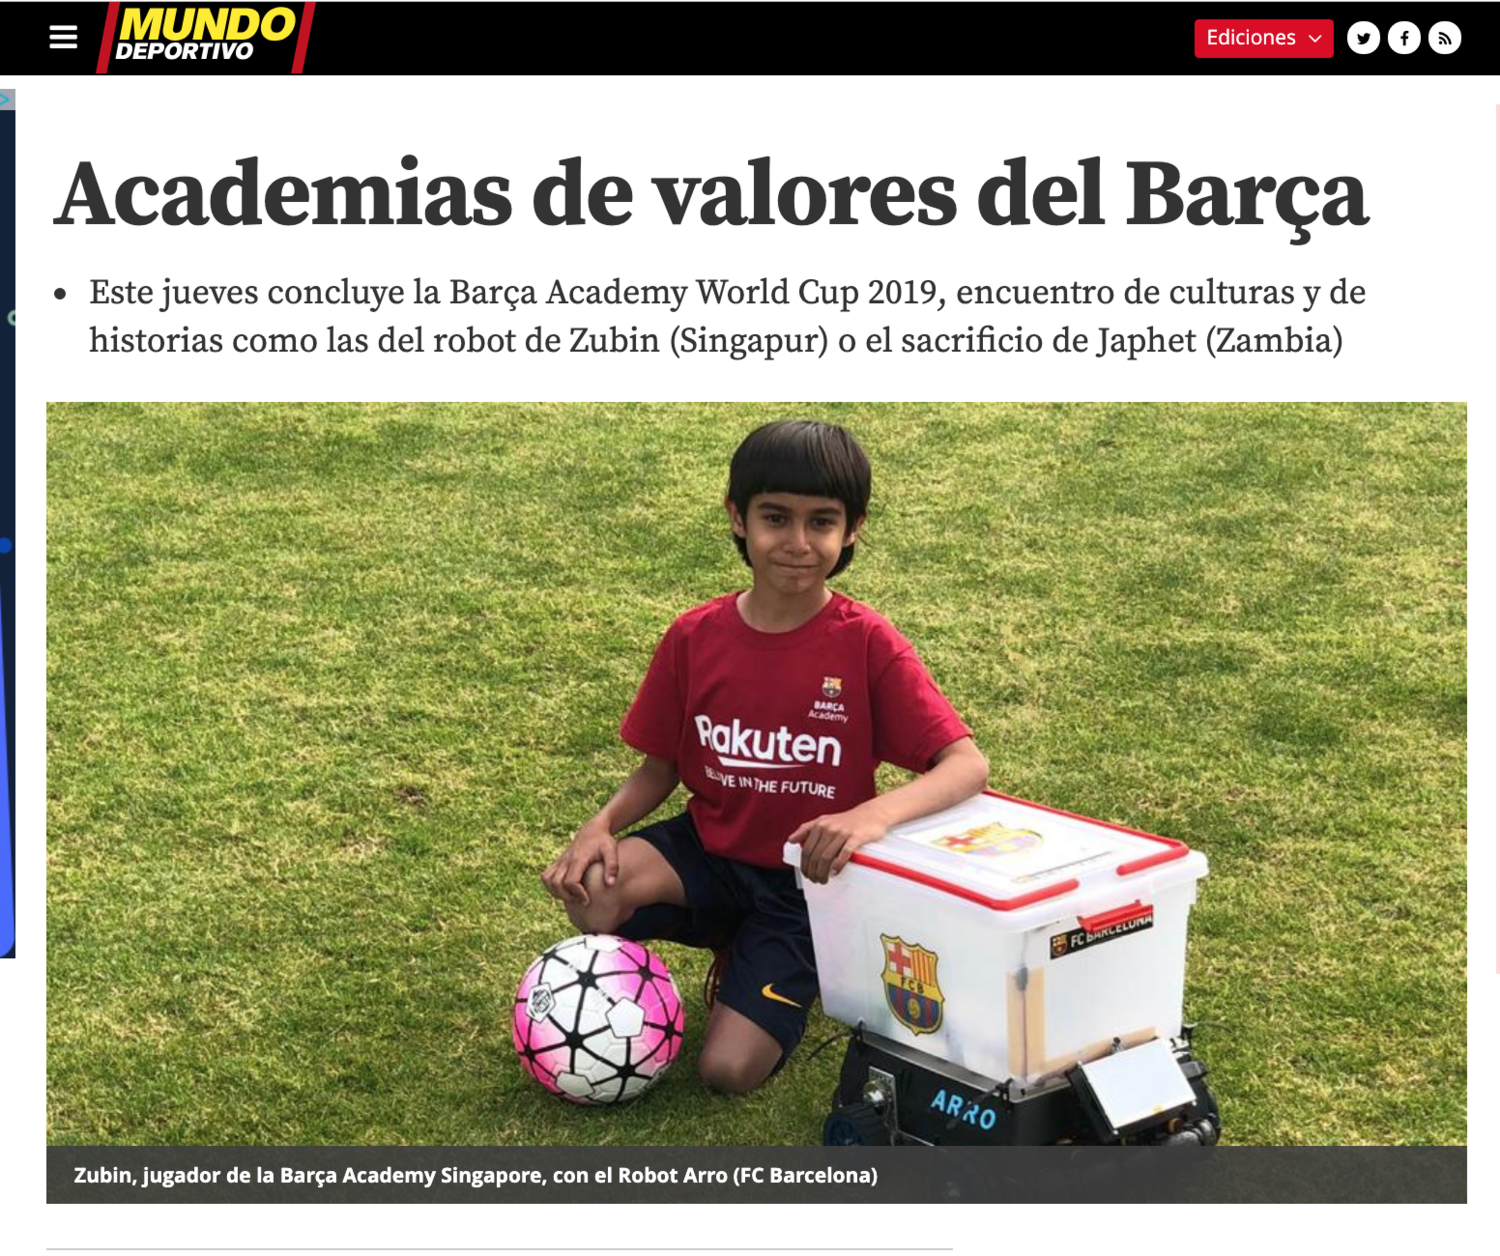 We are so excited that Zubin Khanna and his robot Arro were featured in  Mundo Deportivo , Spain's nationwide daily sports newspaper. Zubin was chosen from amongst 2100 kids from 23 countries who travelled for the Barça Academy World Cup 2019 to Barcelona for his unique story of building a robot that provides water to soccer players to make sure they are hydrated and healthy.   Link to article .